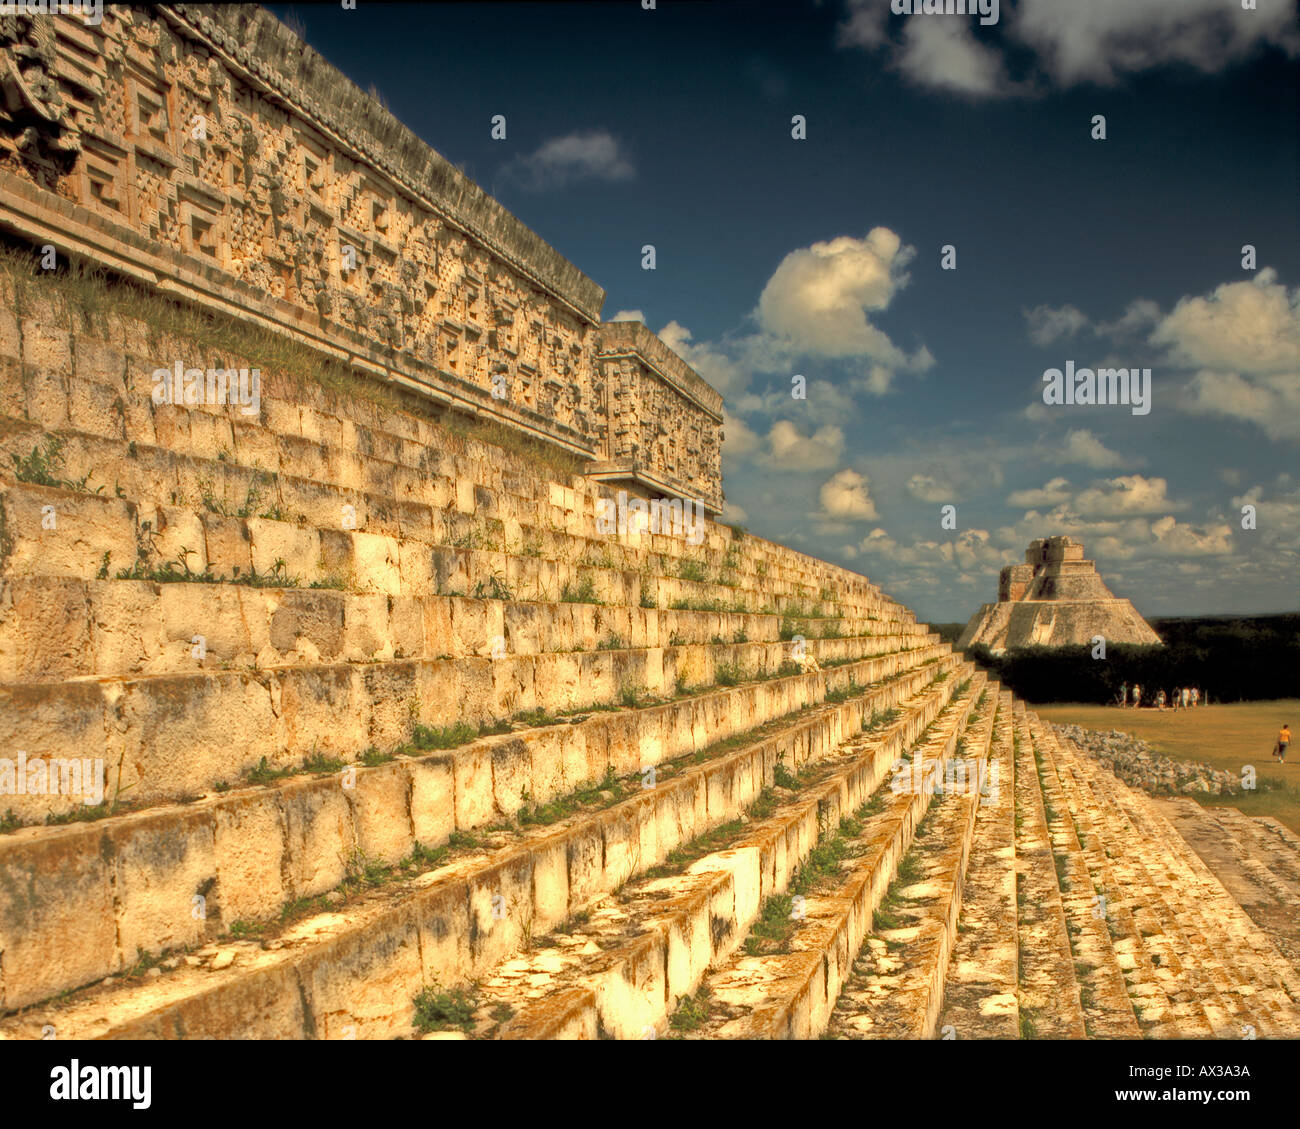 Uxmal Maya Ruins Yucatan Mexico Pyramide Palace of the Governor - Stock Image